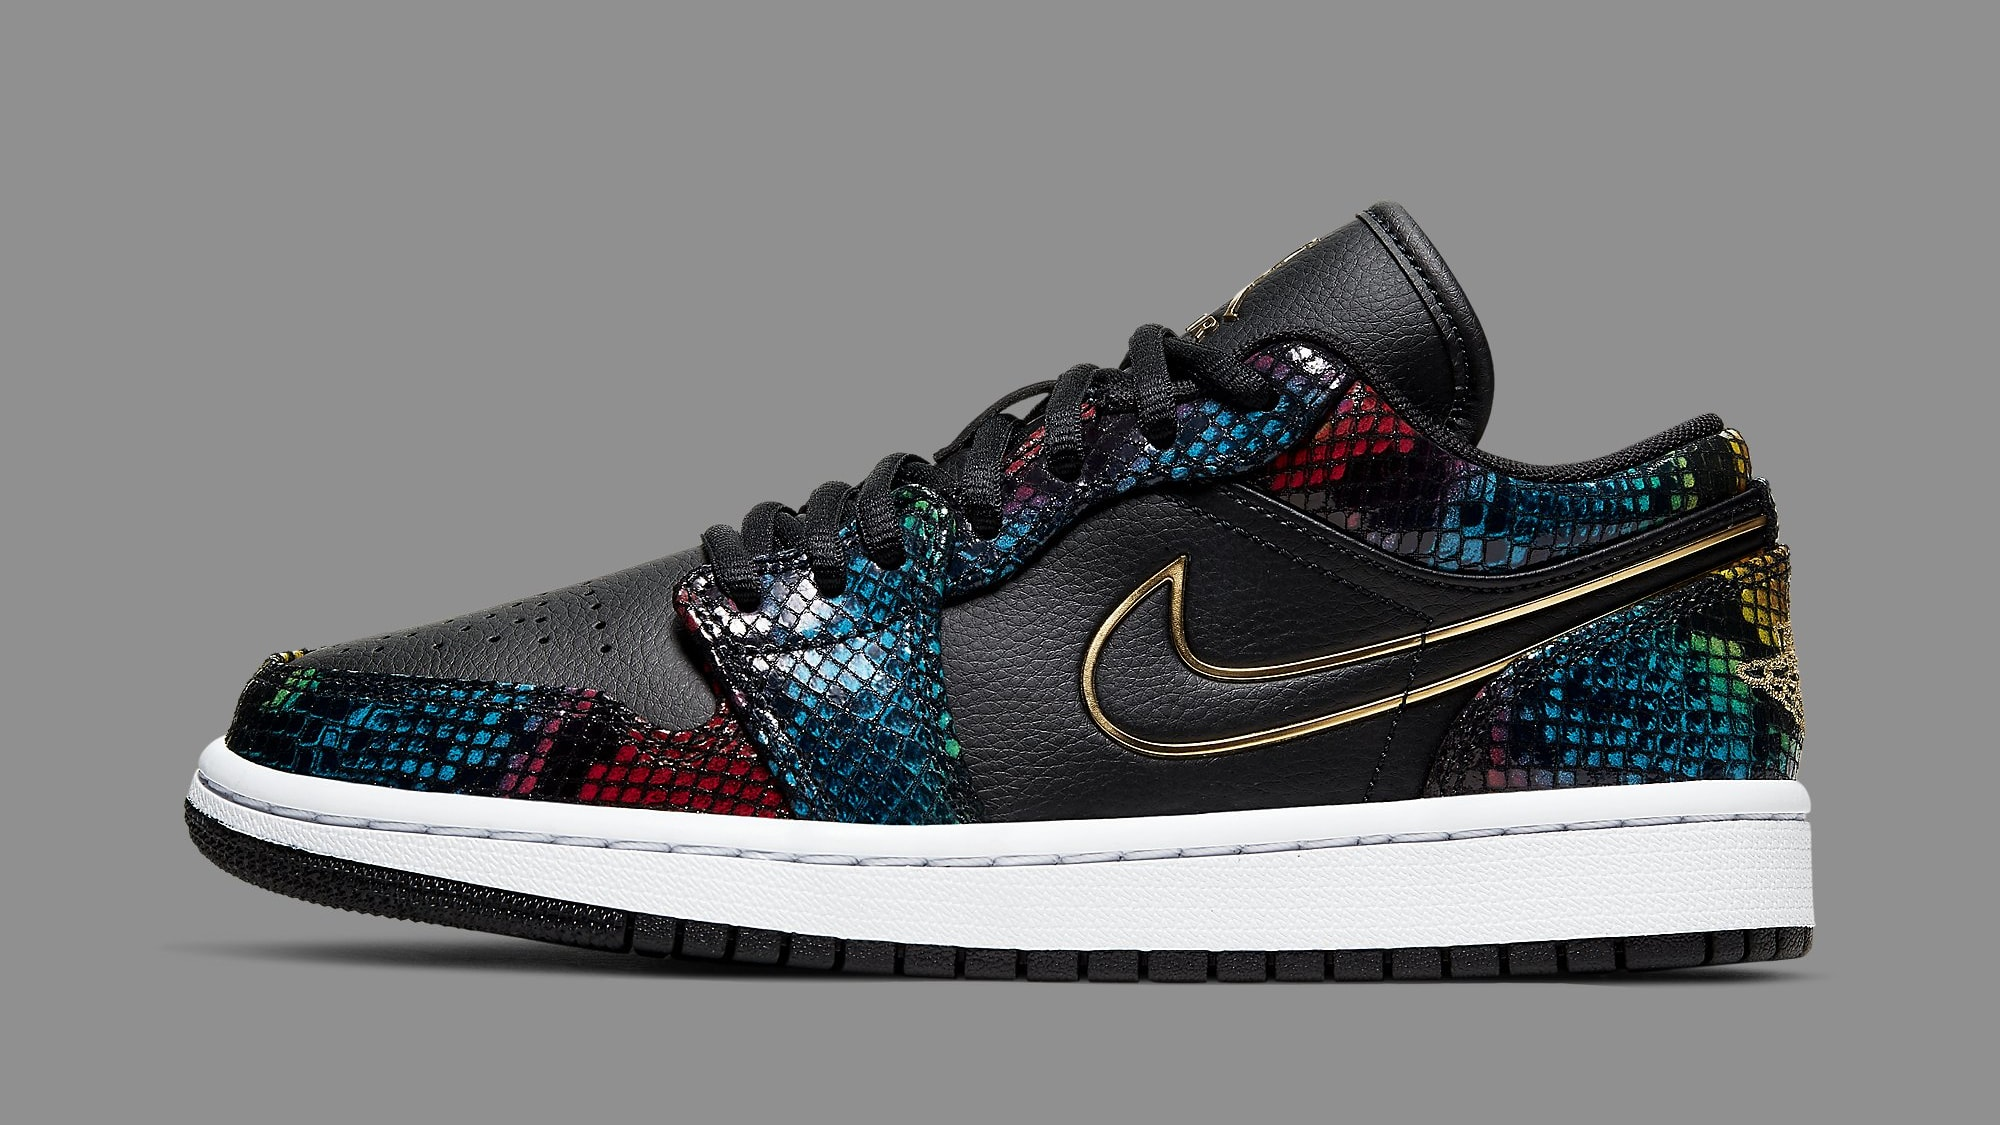 Air Jordan 1 Women's Snakeskin CW5580-001 Lateral